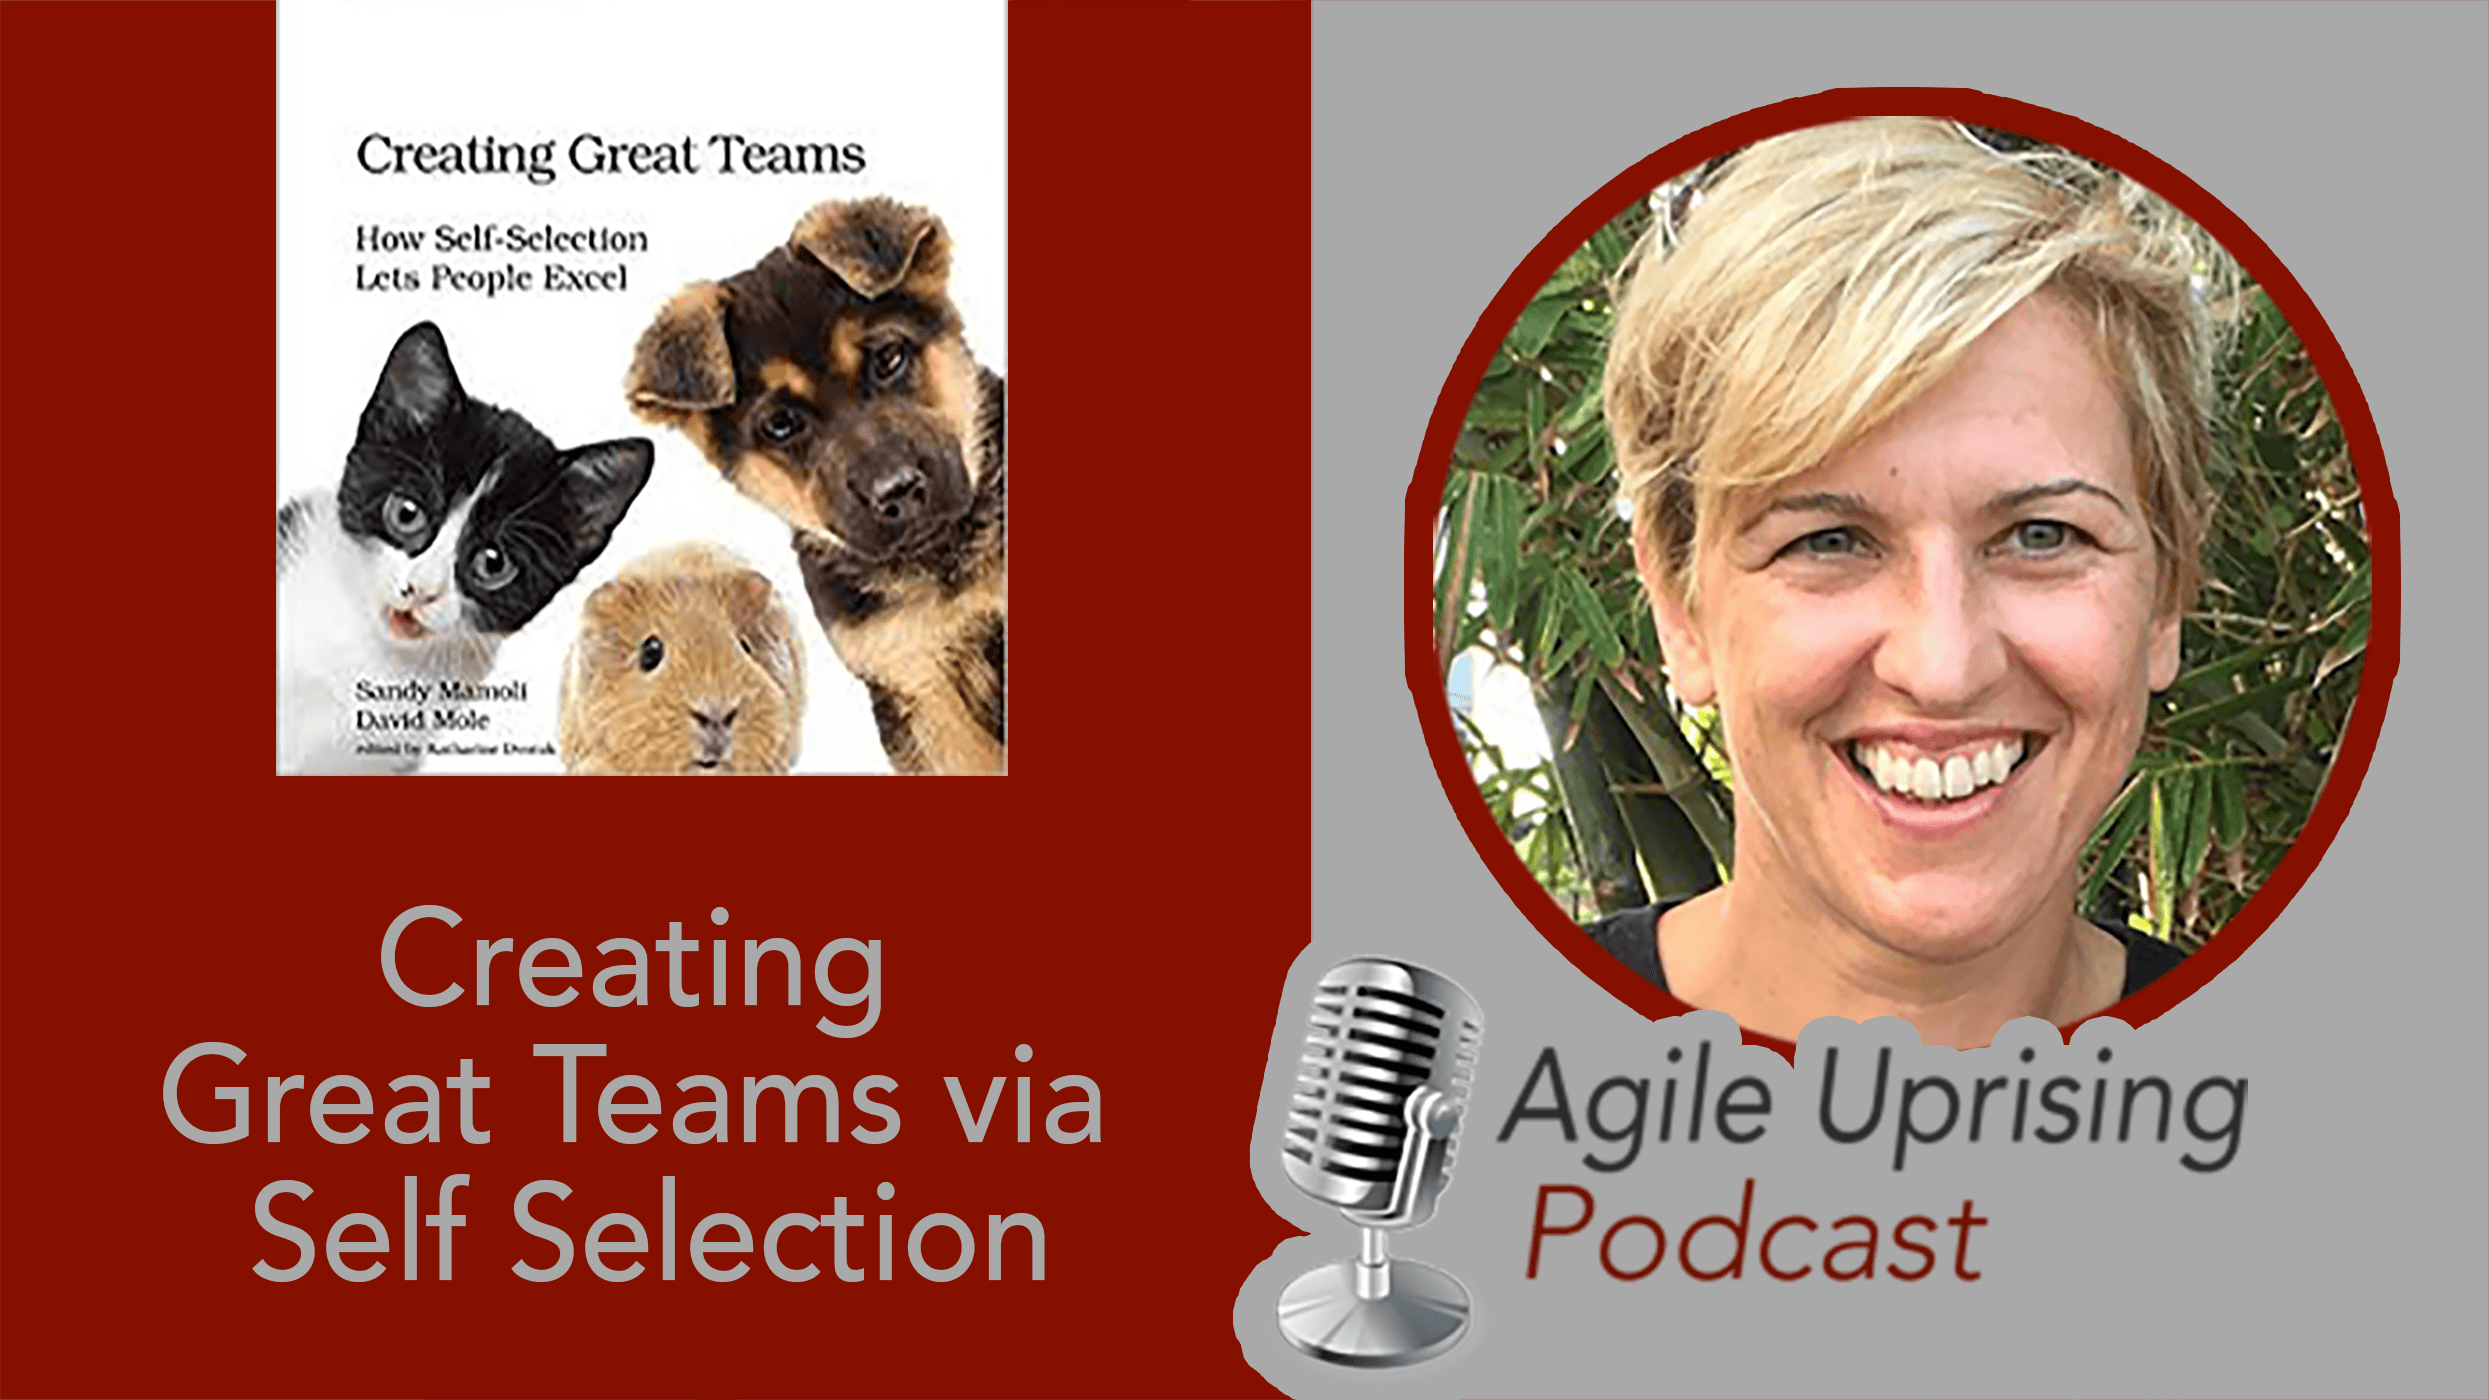 Create Great Teams via Self Selection